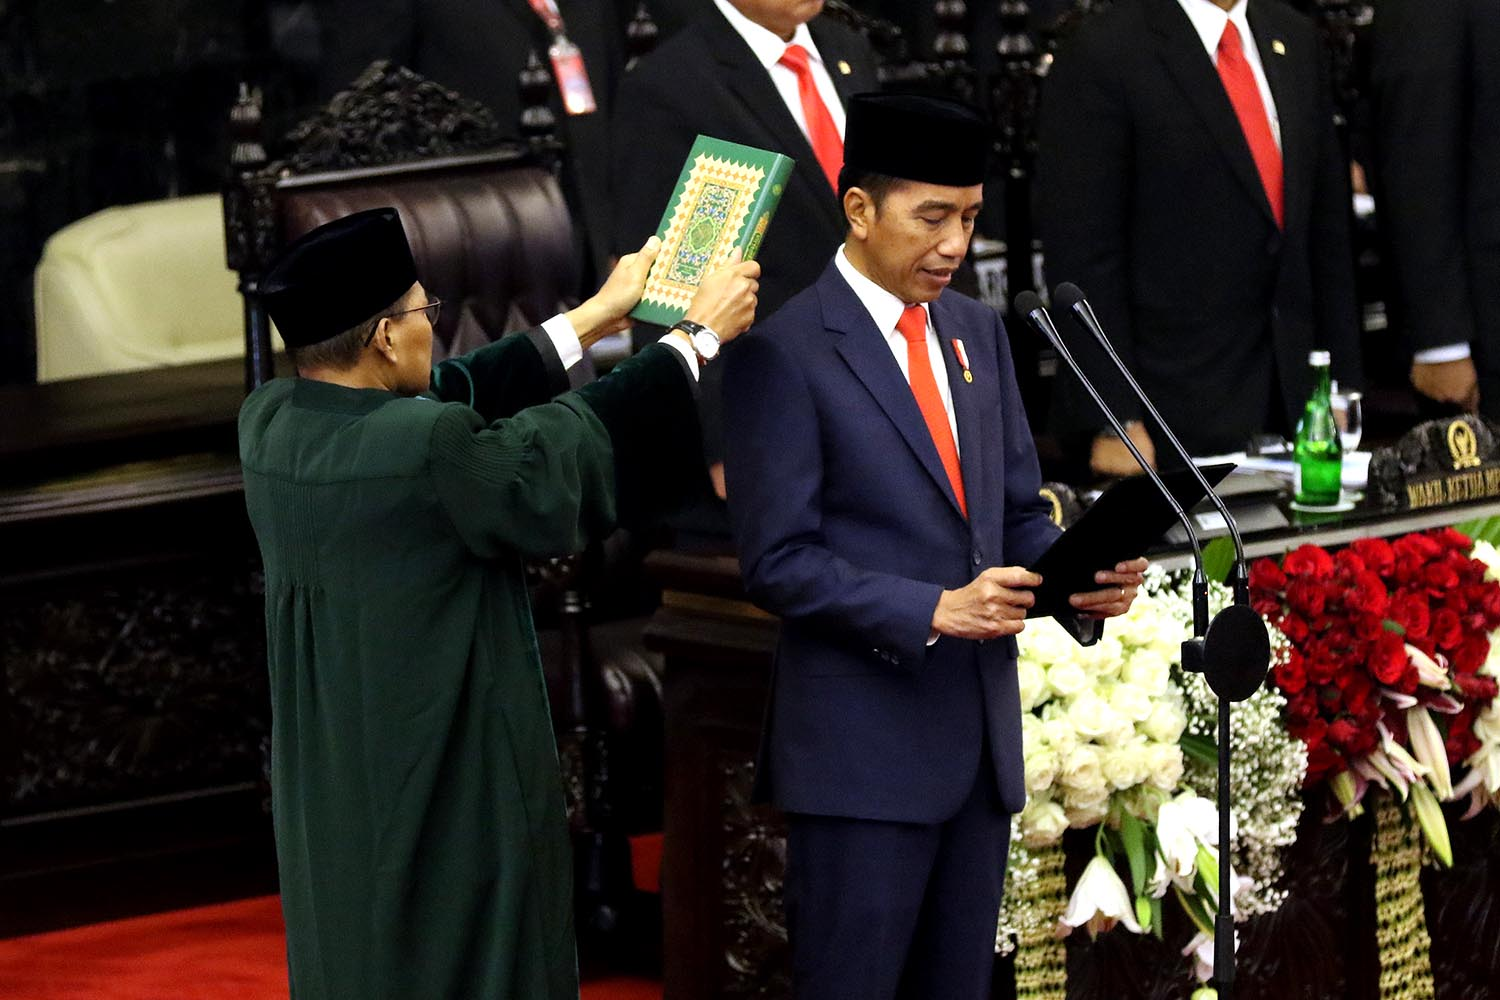 Jokowi under fire for failing to address human rights in inauguration speech